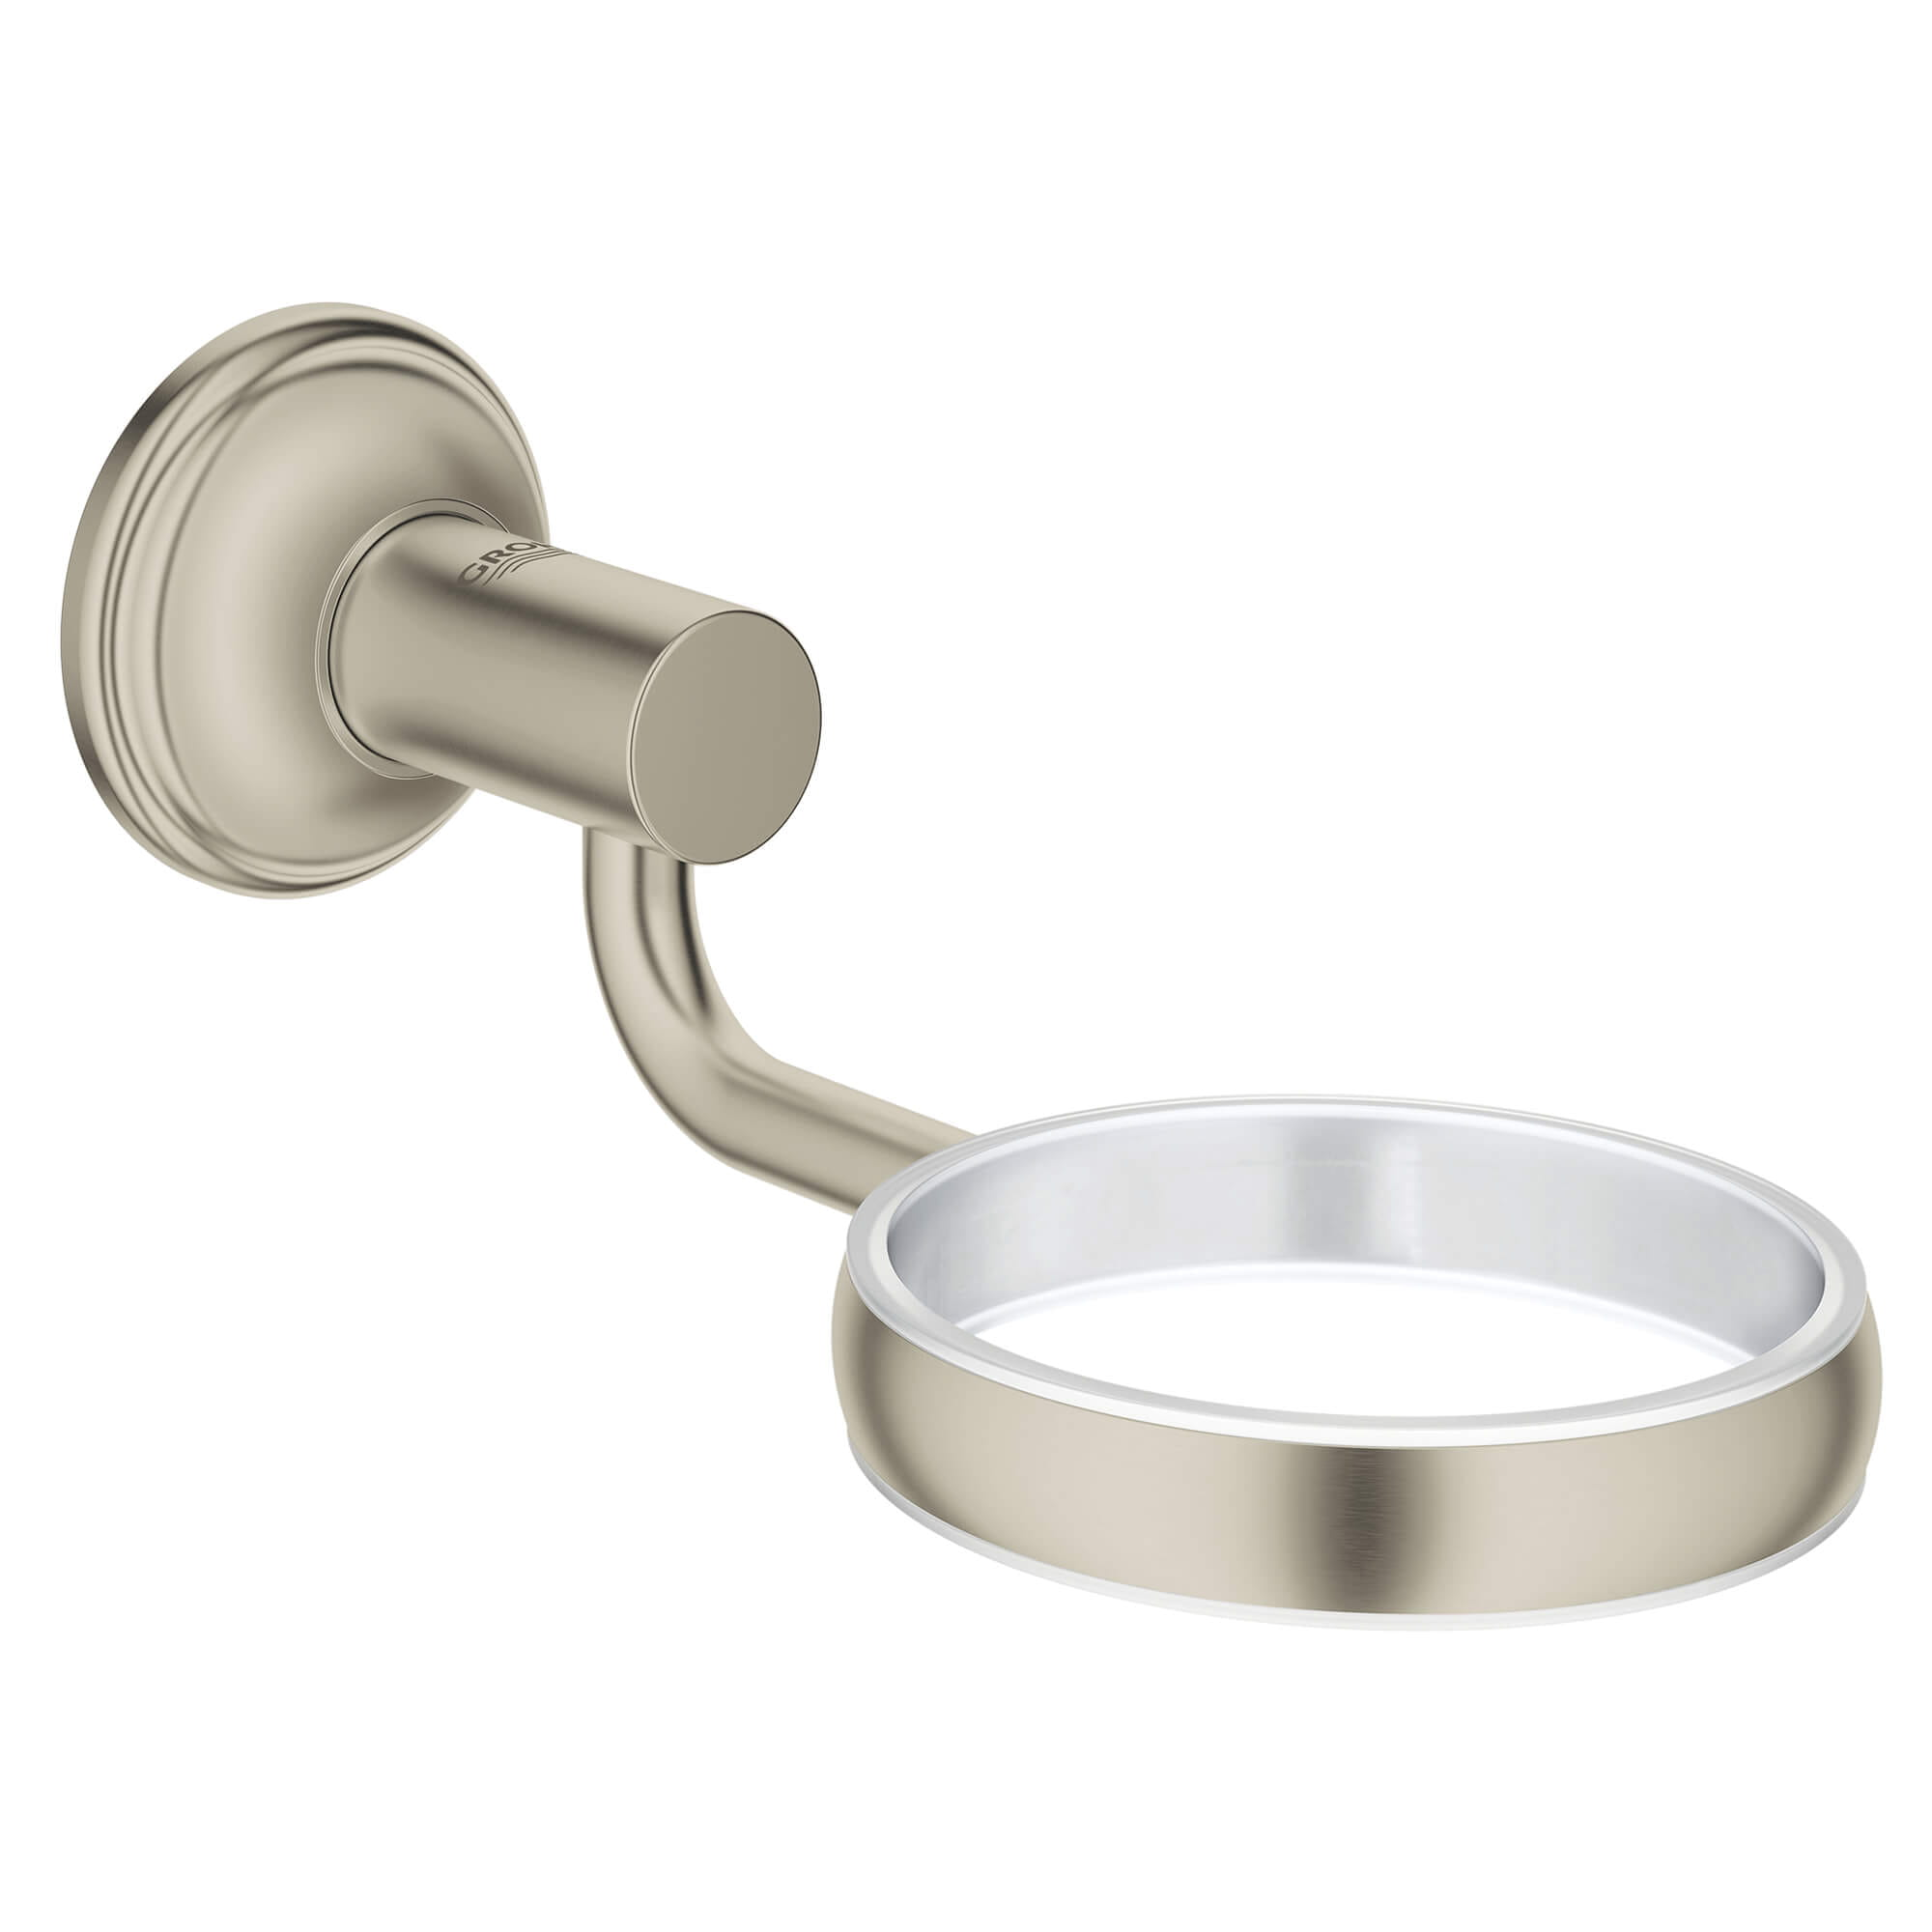 Essentials Authentic Support mural GROHE BRUSHED NICKEL